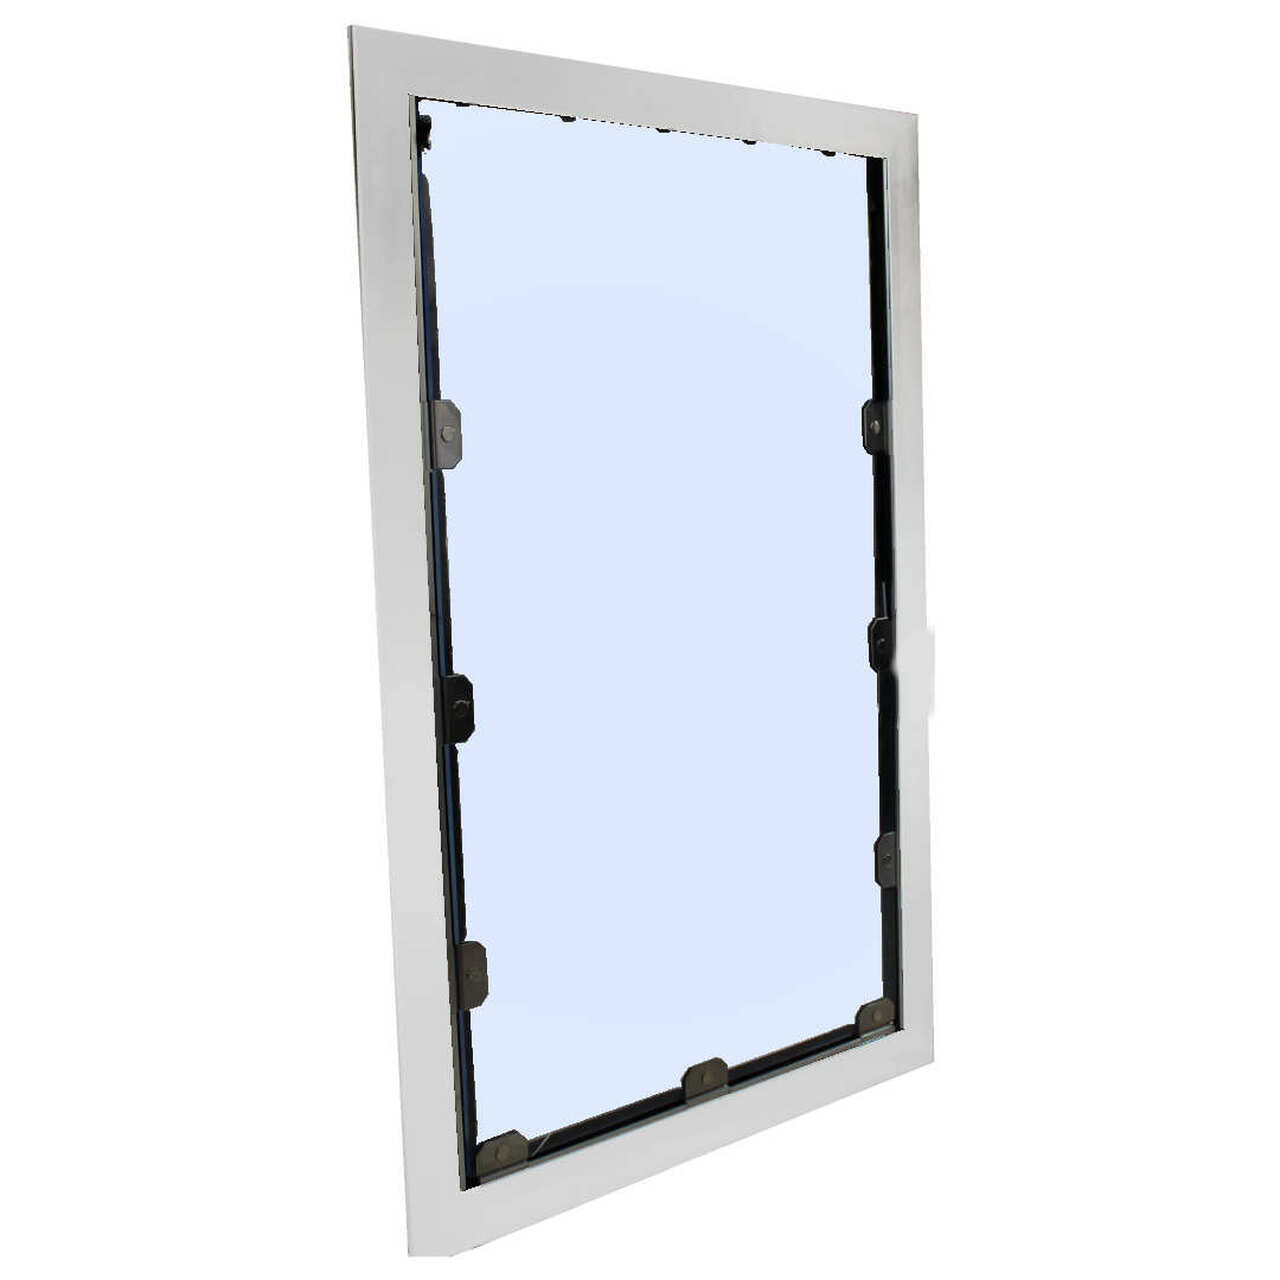 Professional 4 sided kennel door